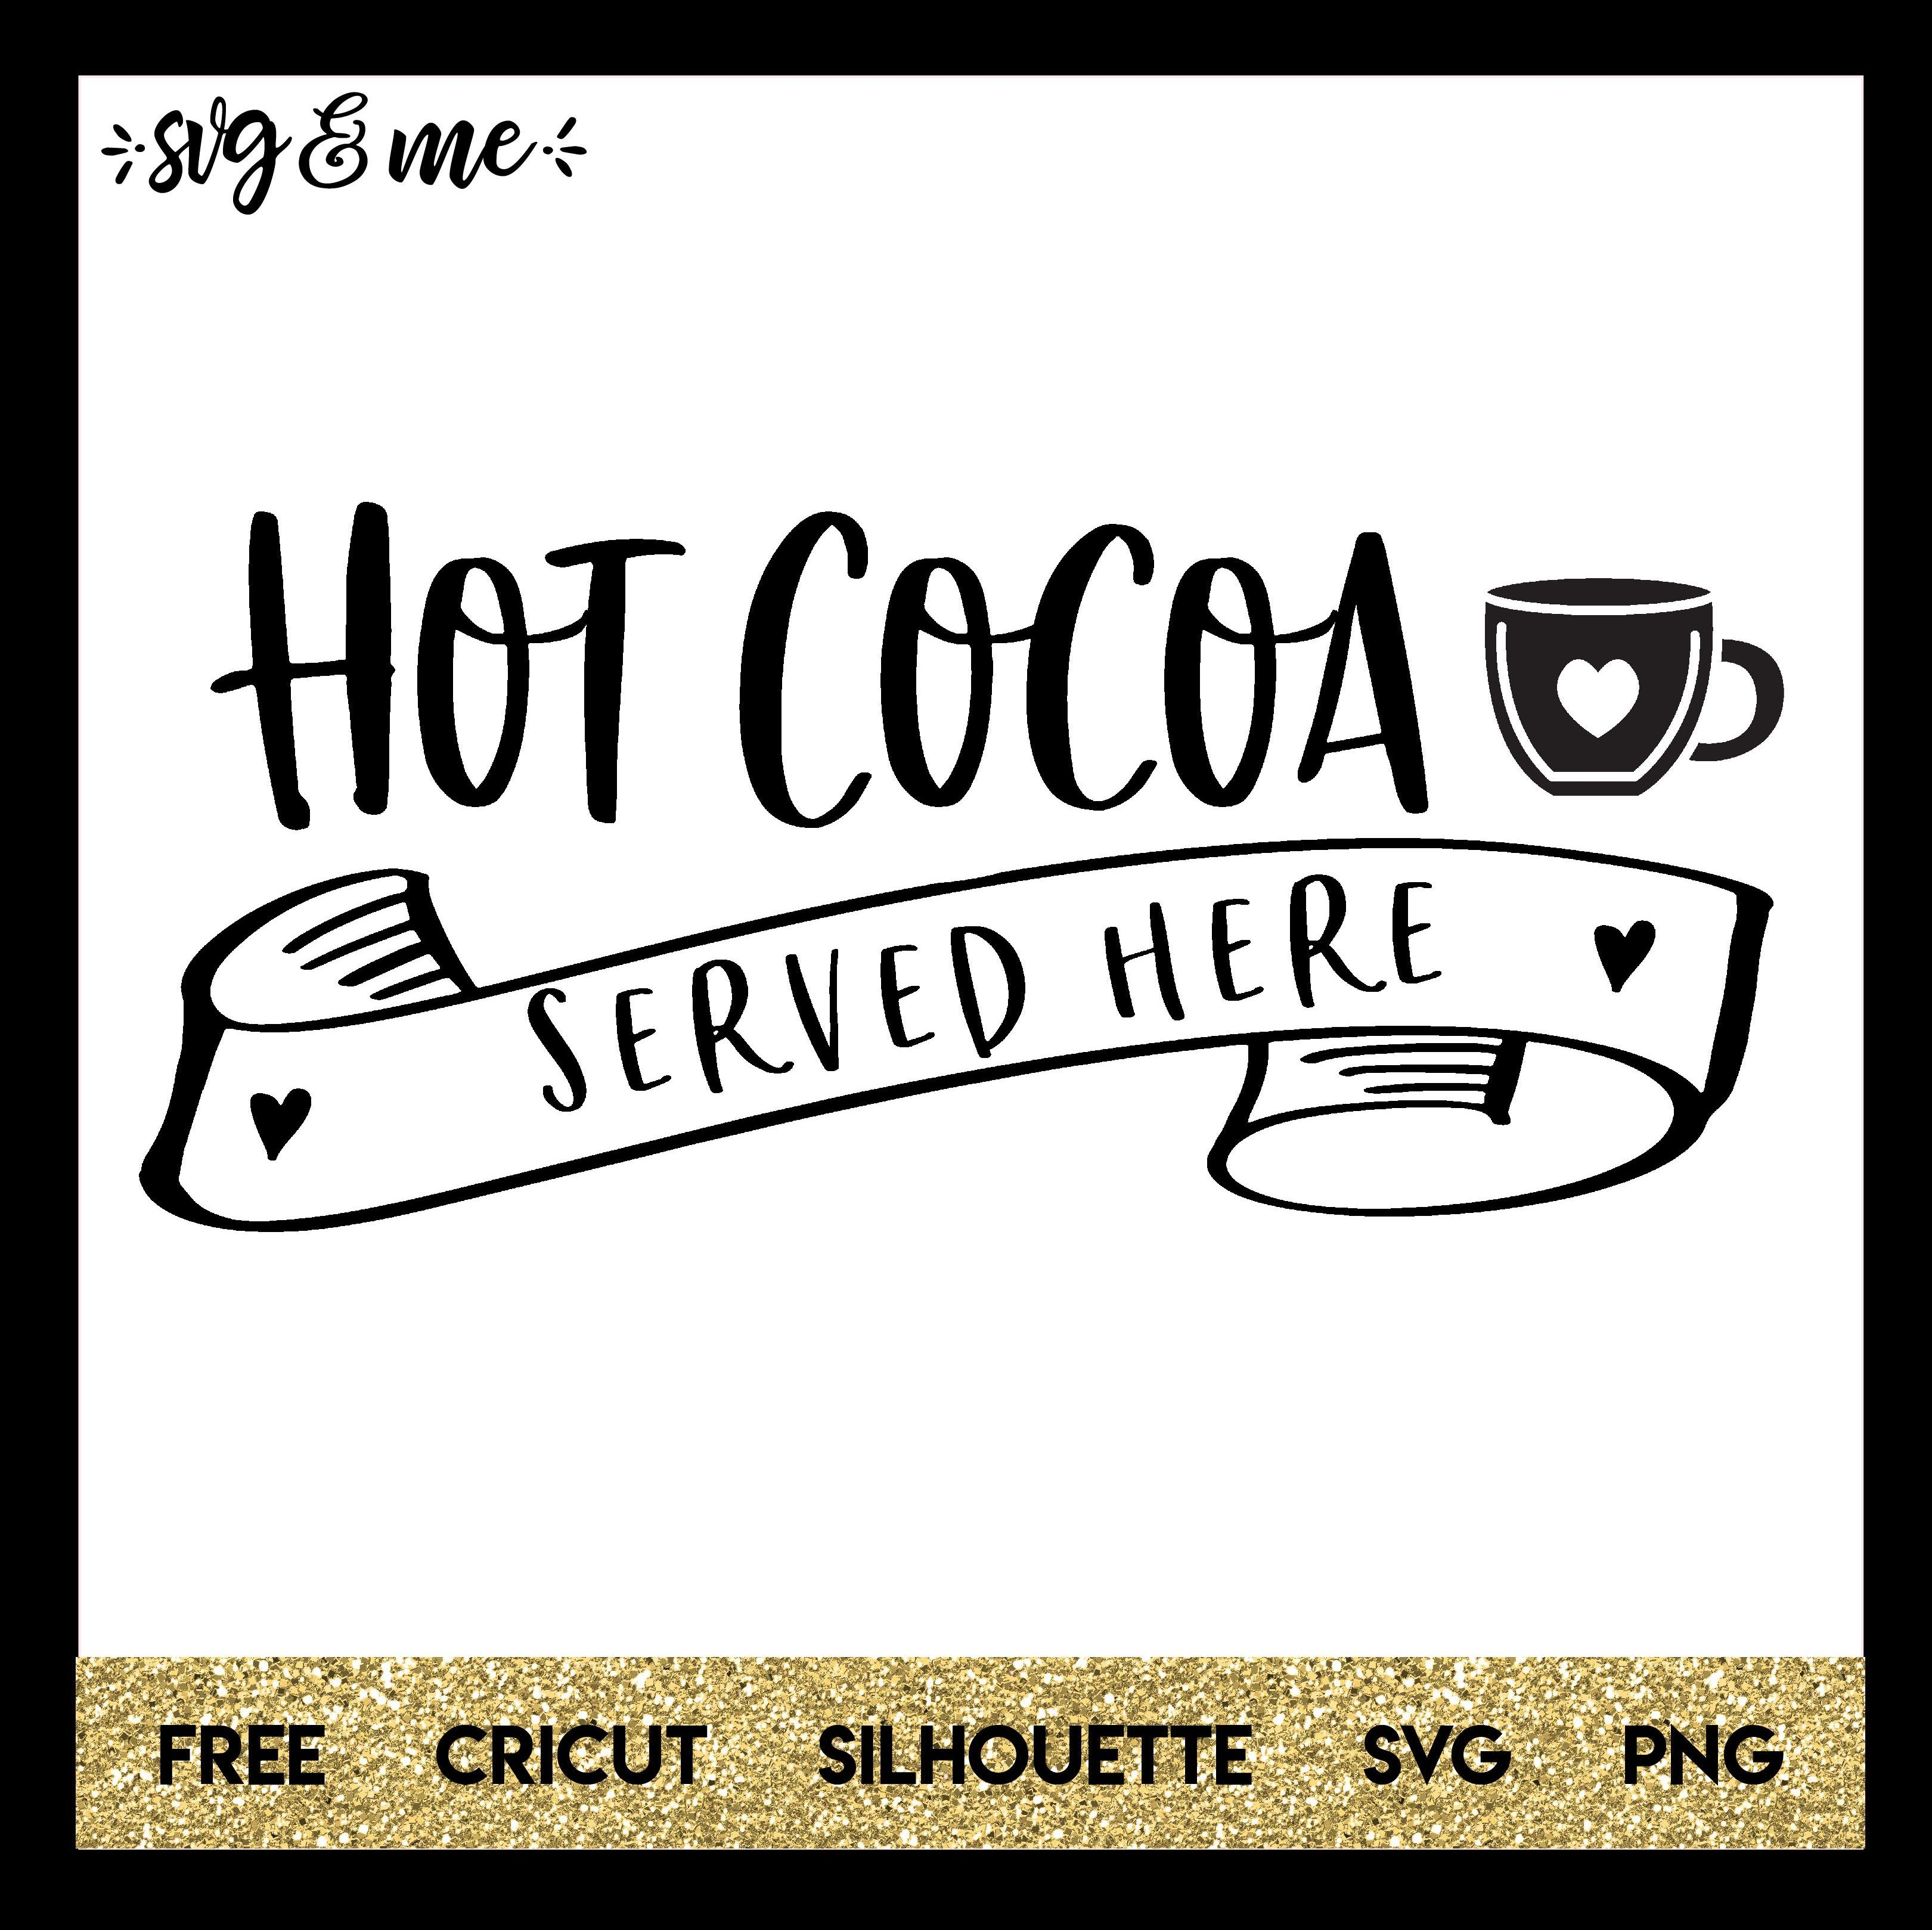 hot cocoa served here svg me hot cocoa bar sign hot cocoa hot chocolate bars hot cocoa served here svg me hot